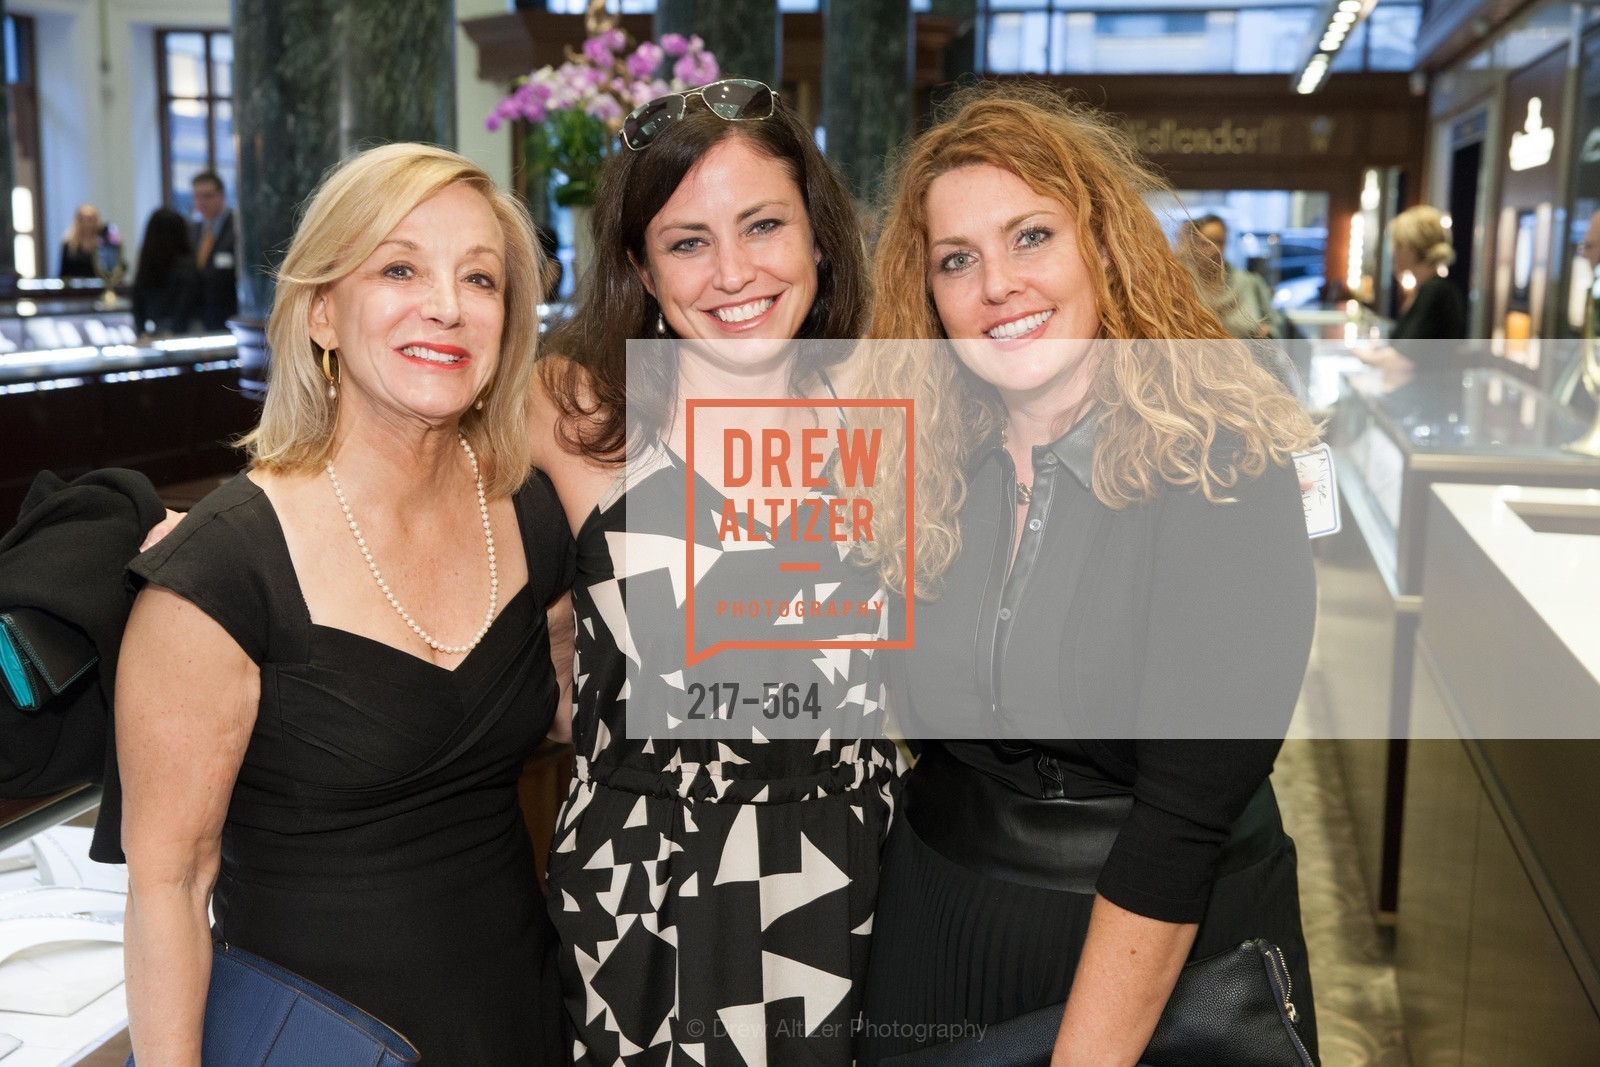 Judie Doherty, Alyse Zukalski, Jill Jepson, SHREVE & CO. Hosts AMERICAN CANCER SOCIETY BENEFIT, US, September 10th, 2014,Drew Altizer, Drew Altizer Photography, full-service agency, private events, San Francisco photographer, photographer california